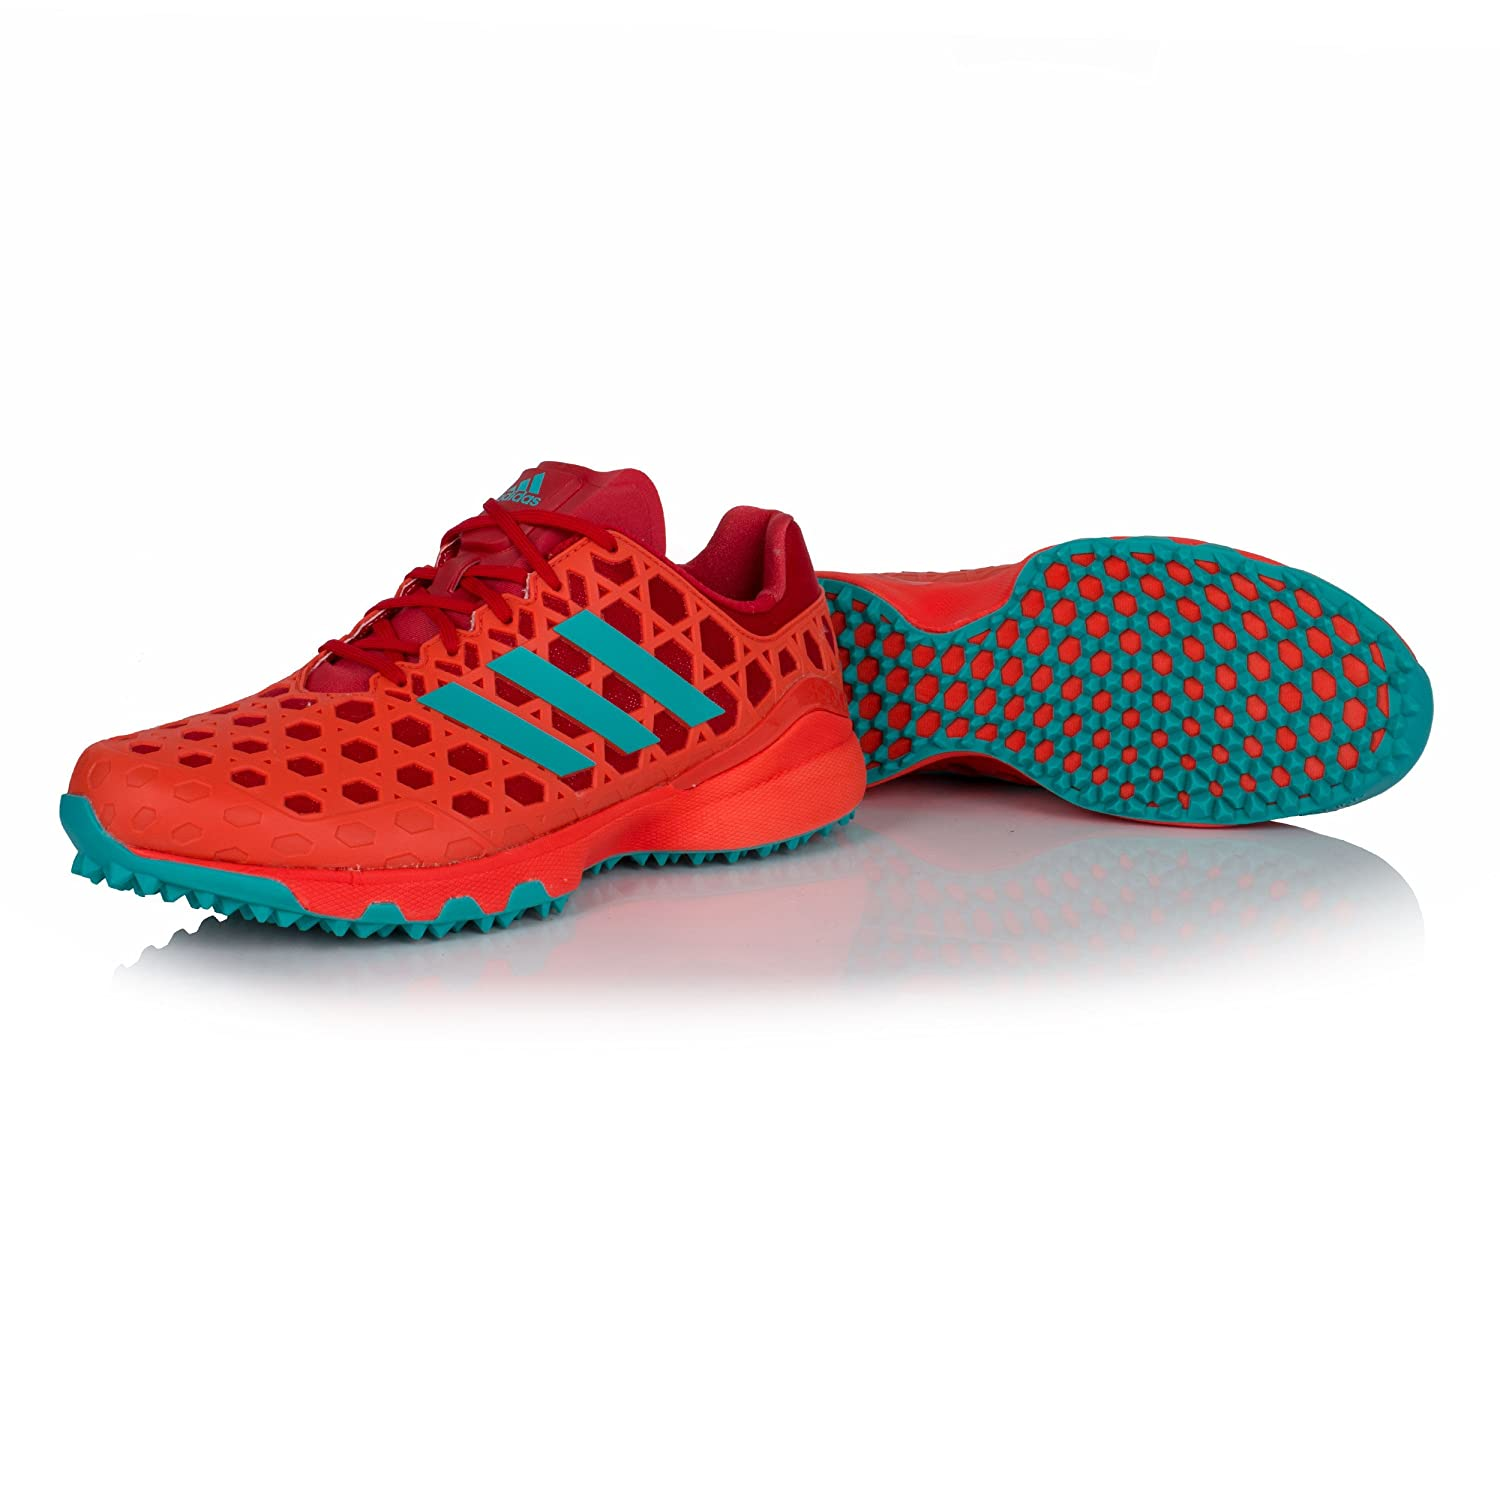 huge selection of 15afc 3033a adidas Adizero Hockey Schuh - SS18 Amazon.de Schuhe  Handtas